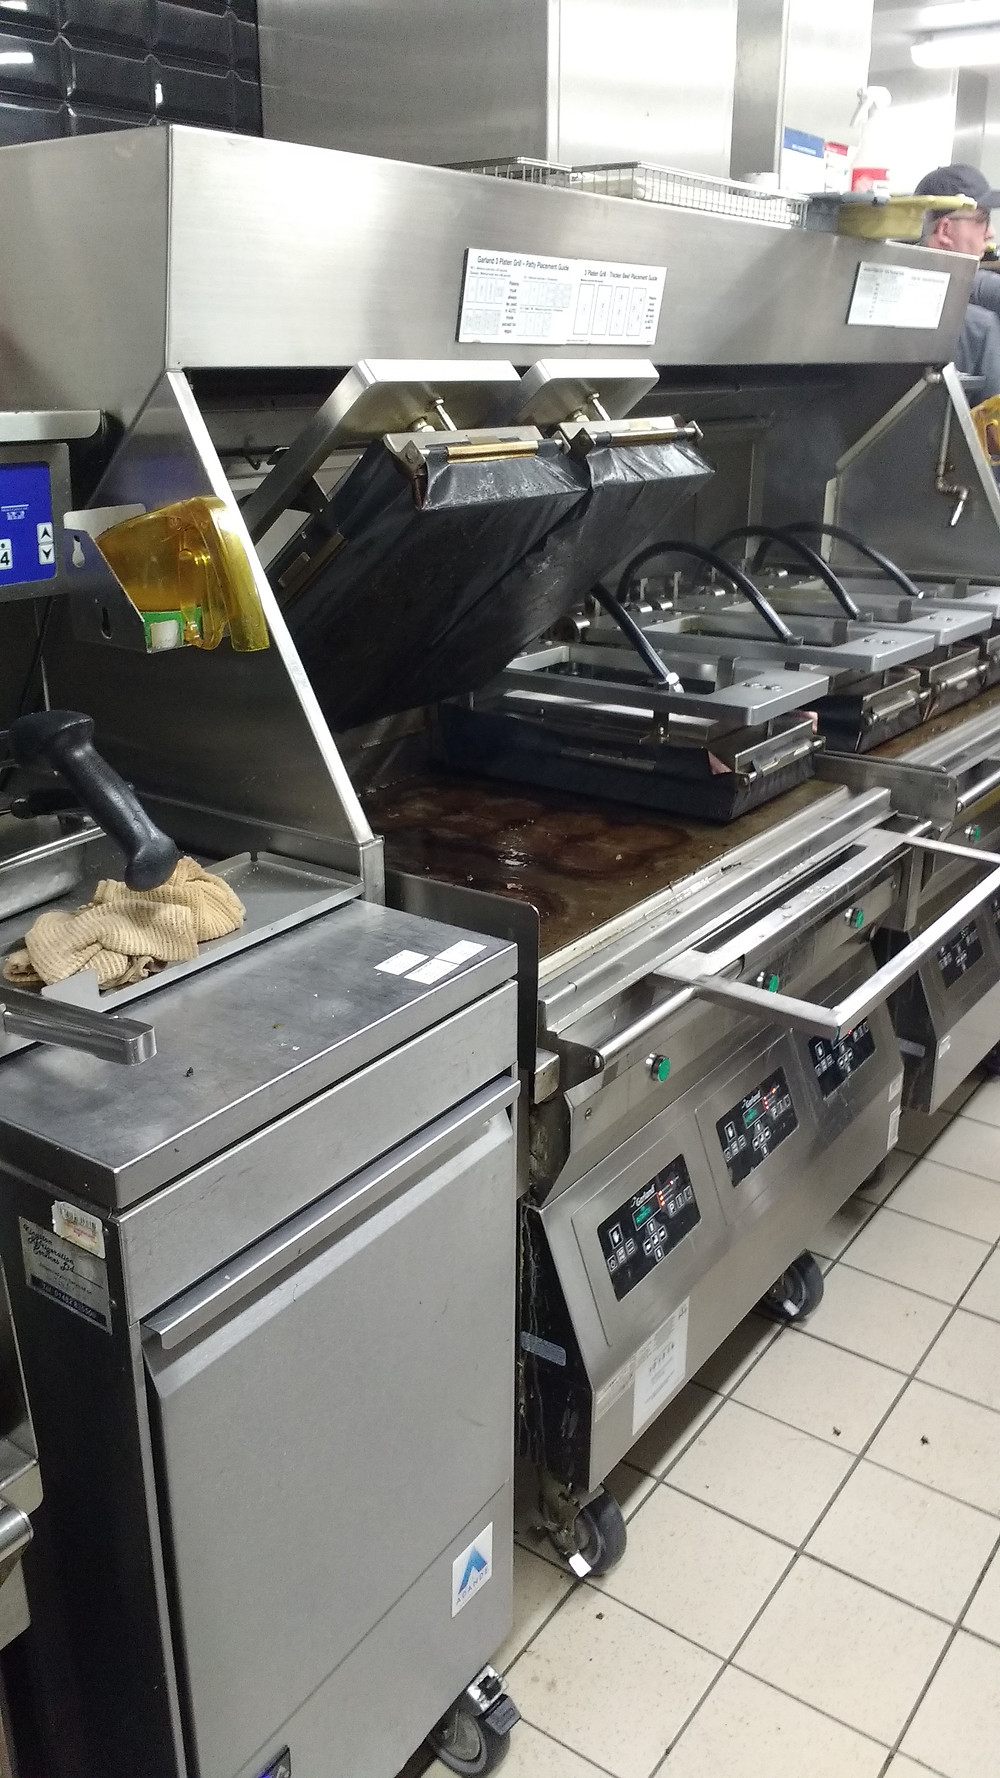 State of the art burger thickness detecting grills